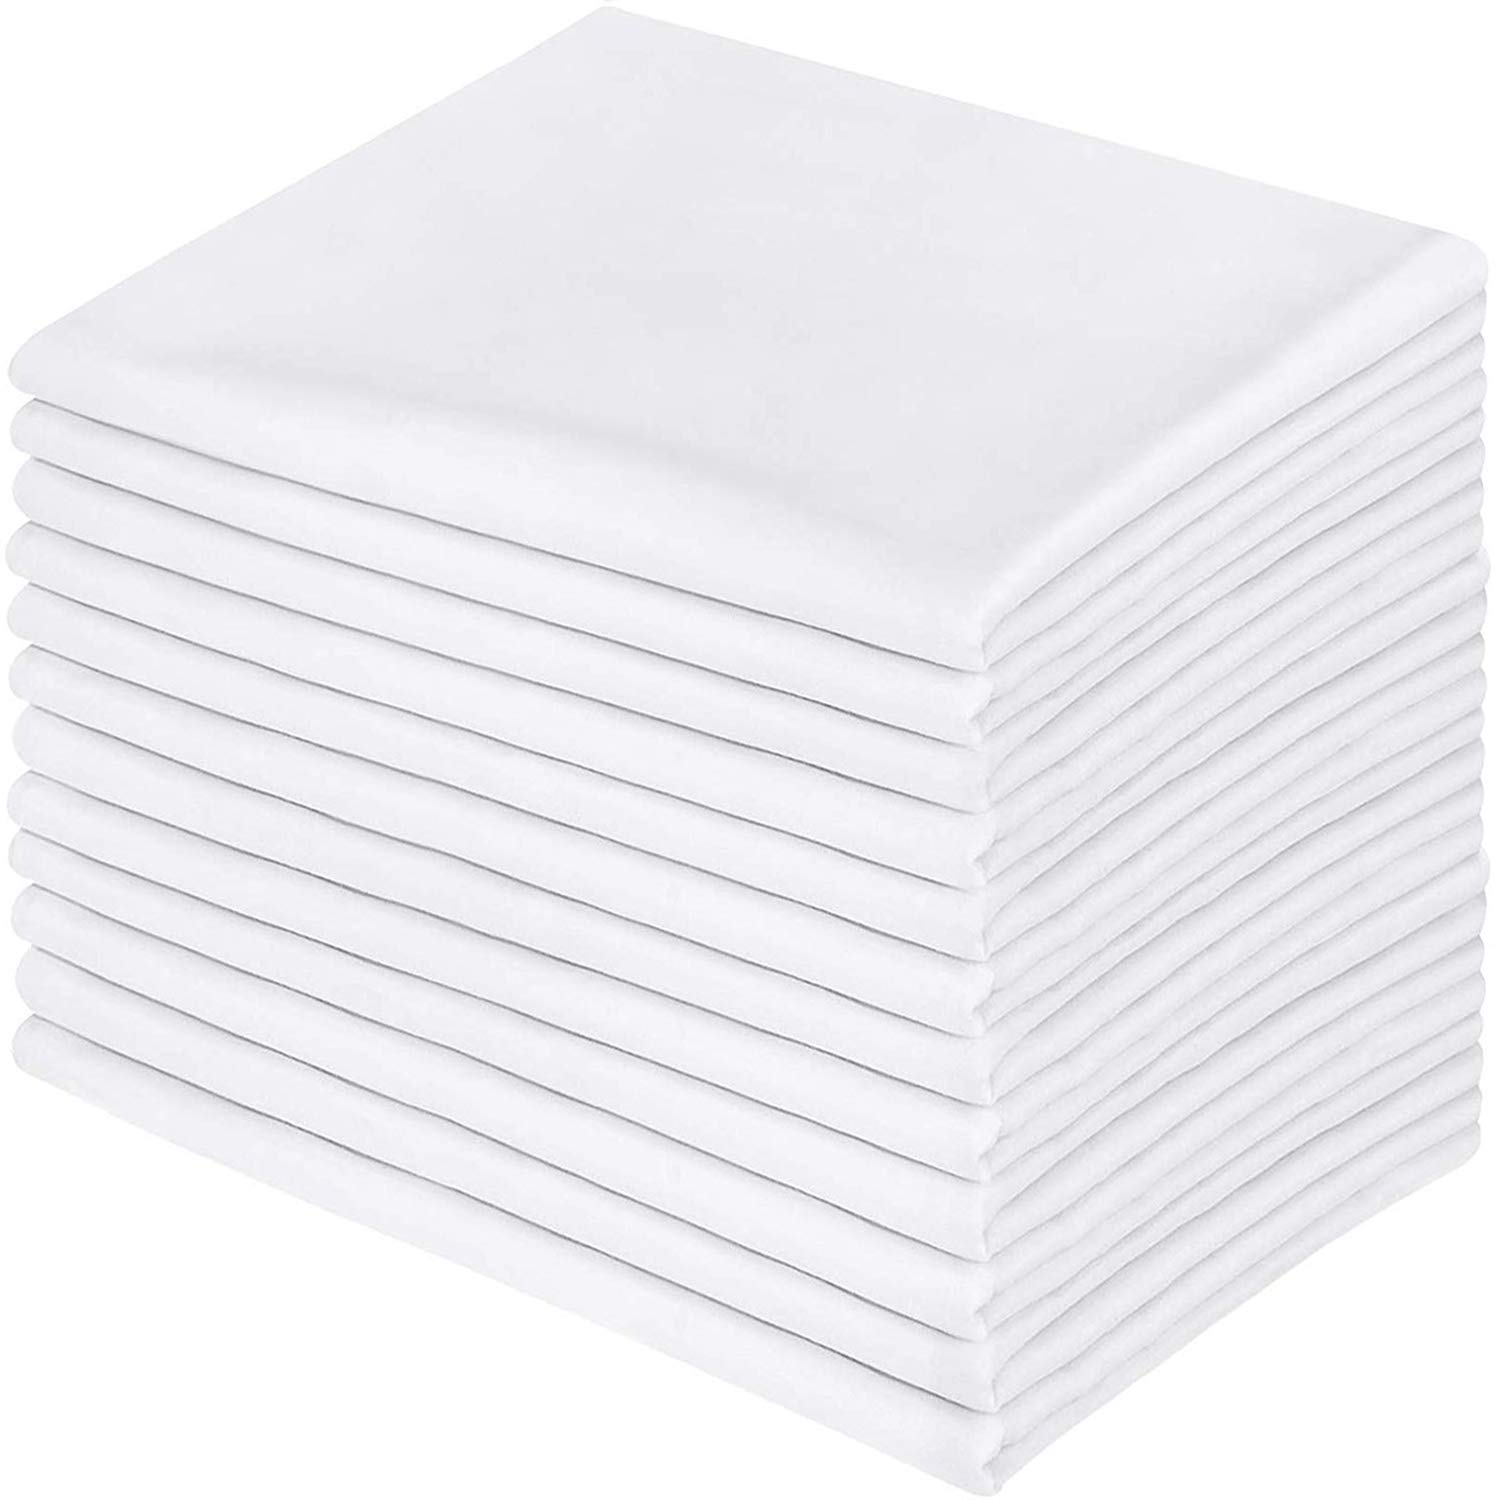 Utopia Bedding 12 Pillowcases - Brushed Microfiber Pillow Cover - Queen White